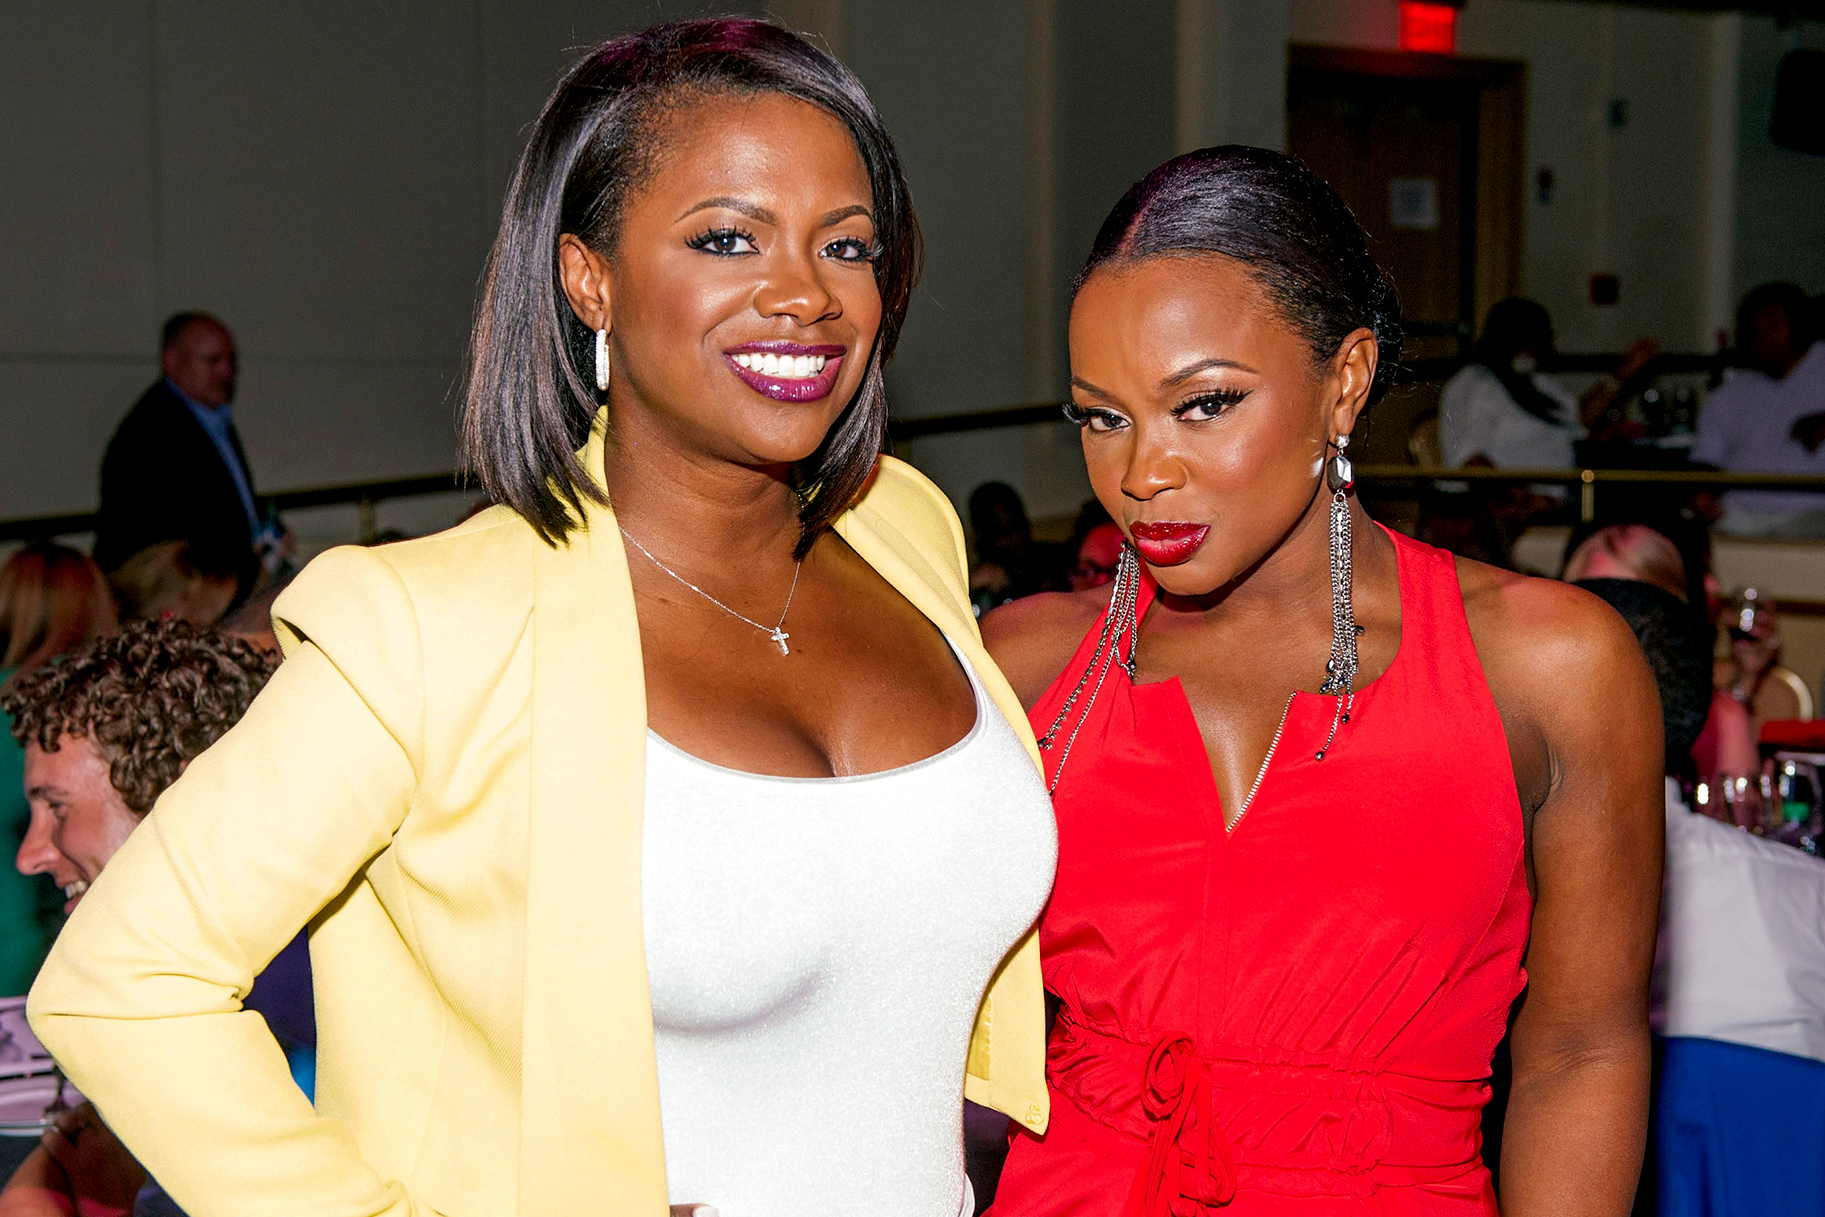 kandi-burruss-feels-that-phaedra-parks-should-be-cancelled-for-lying-about-drugging-and-assaulting-porsha-williams